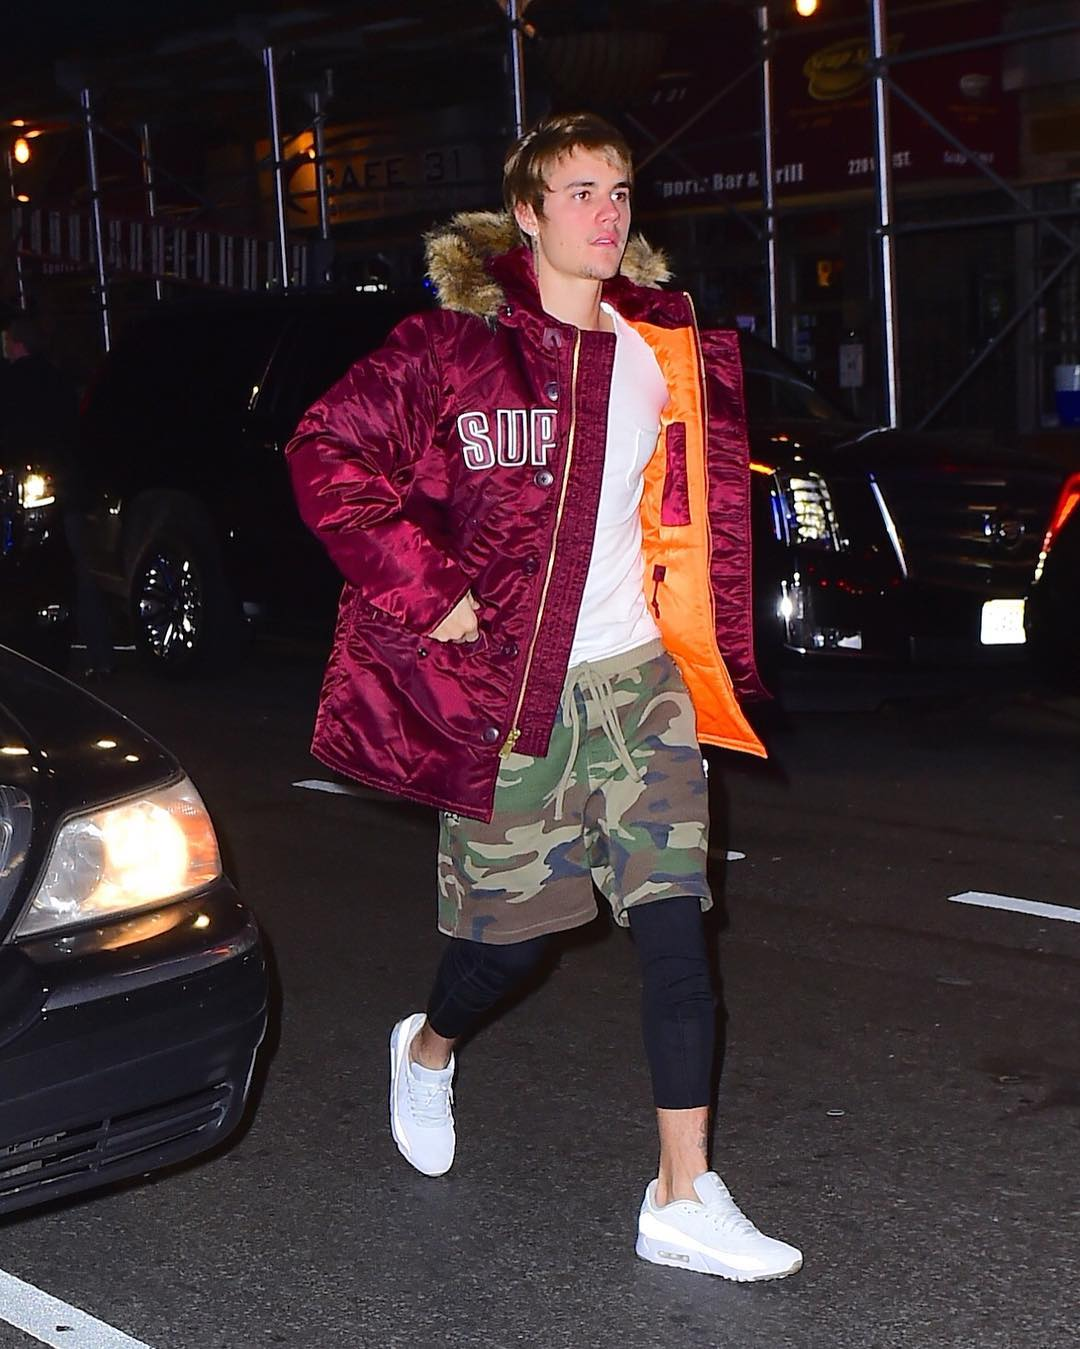 SPOTTED: Justin Bieber in Supreme and F.O.G